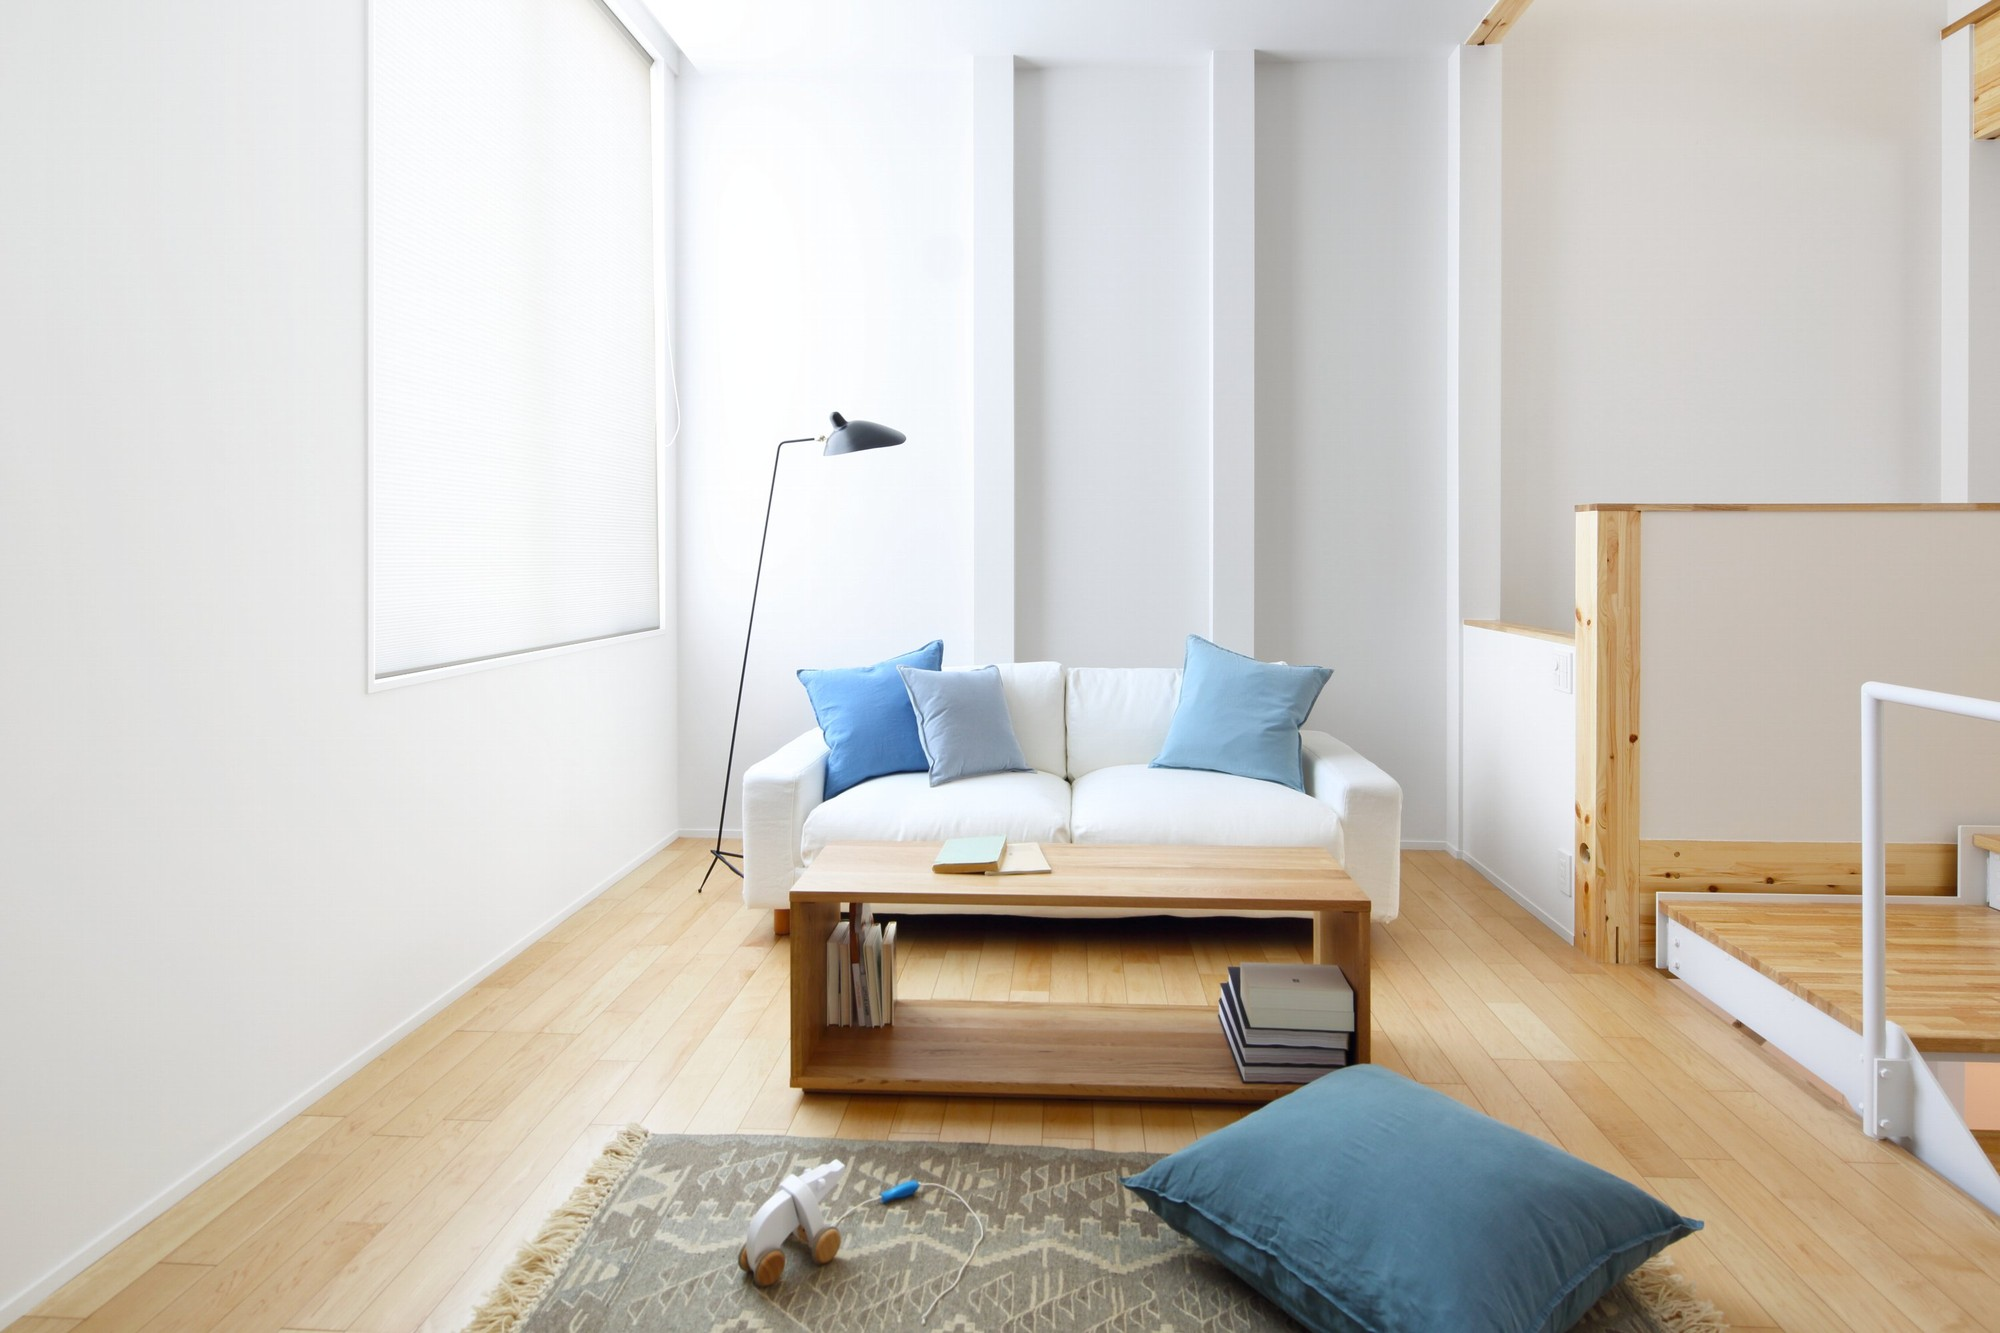 Design Your House Gallery Of Design Your Own Home With Muji 39s Prefab